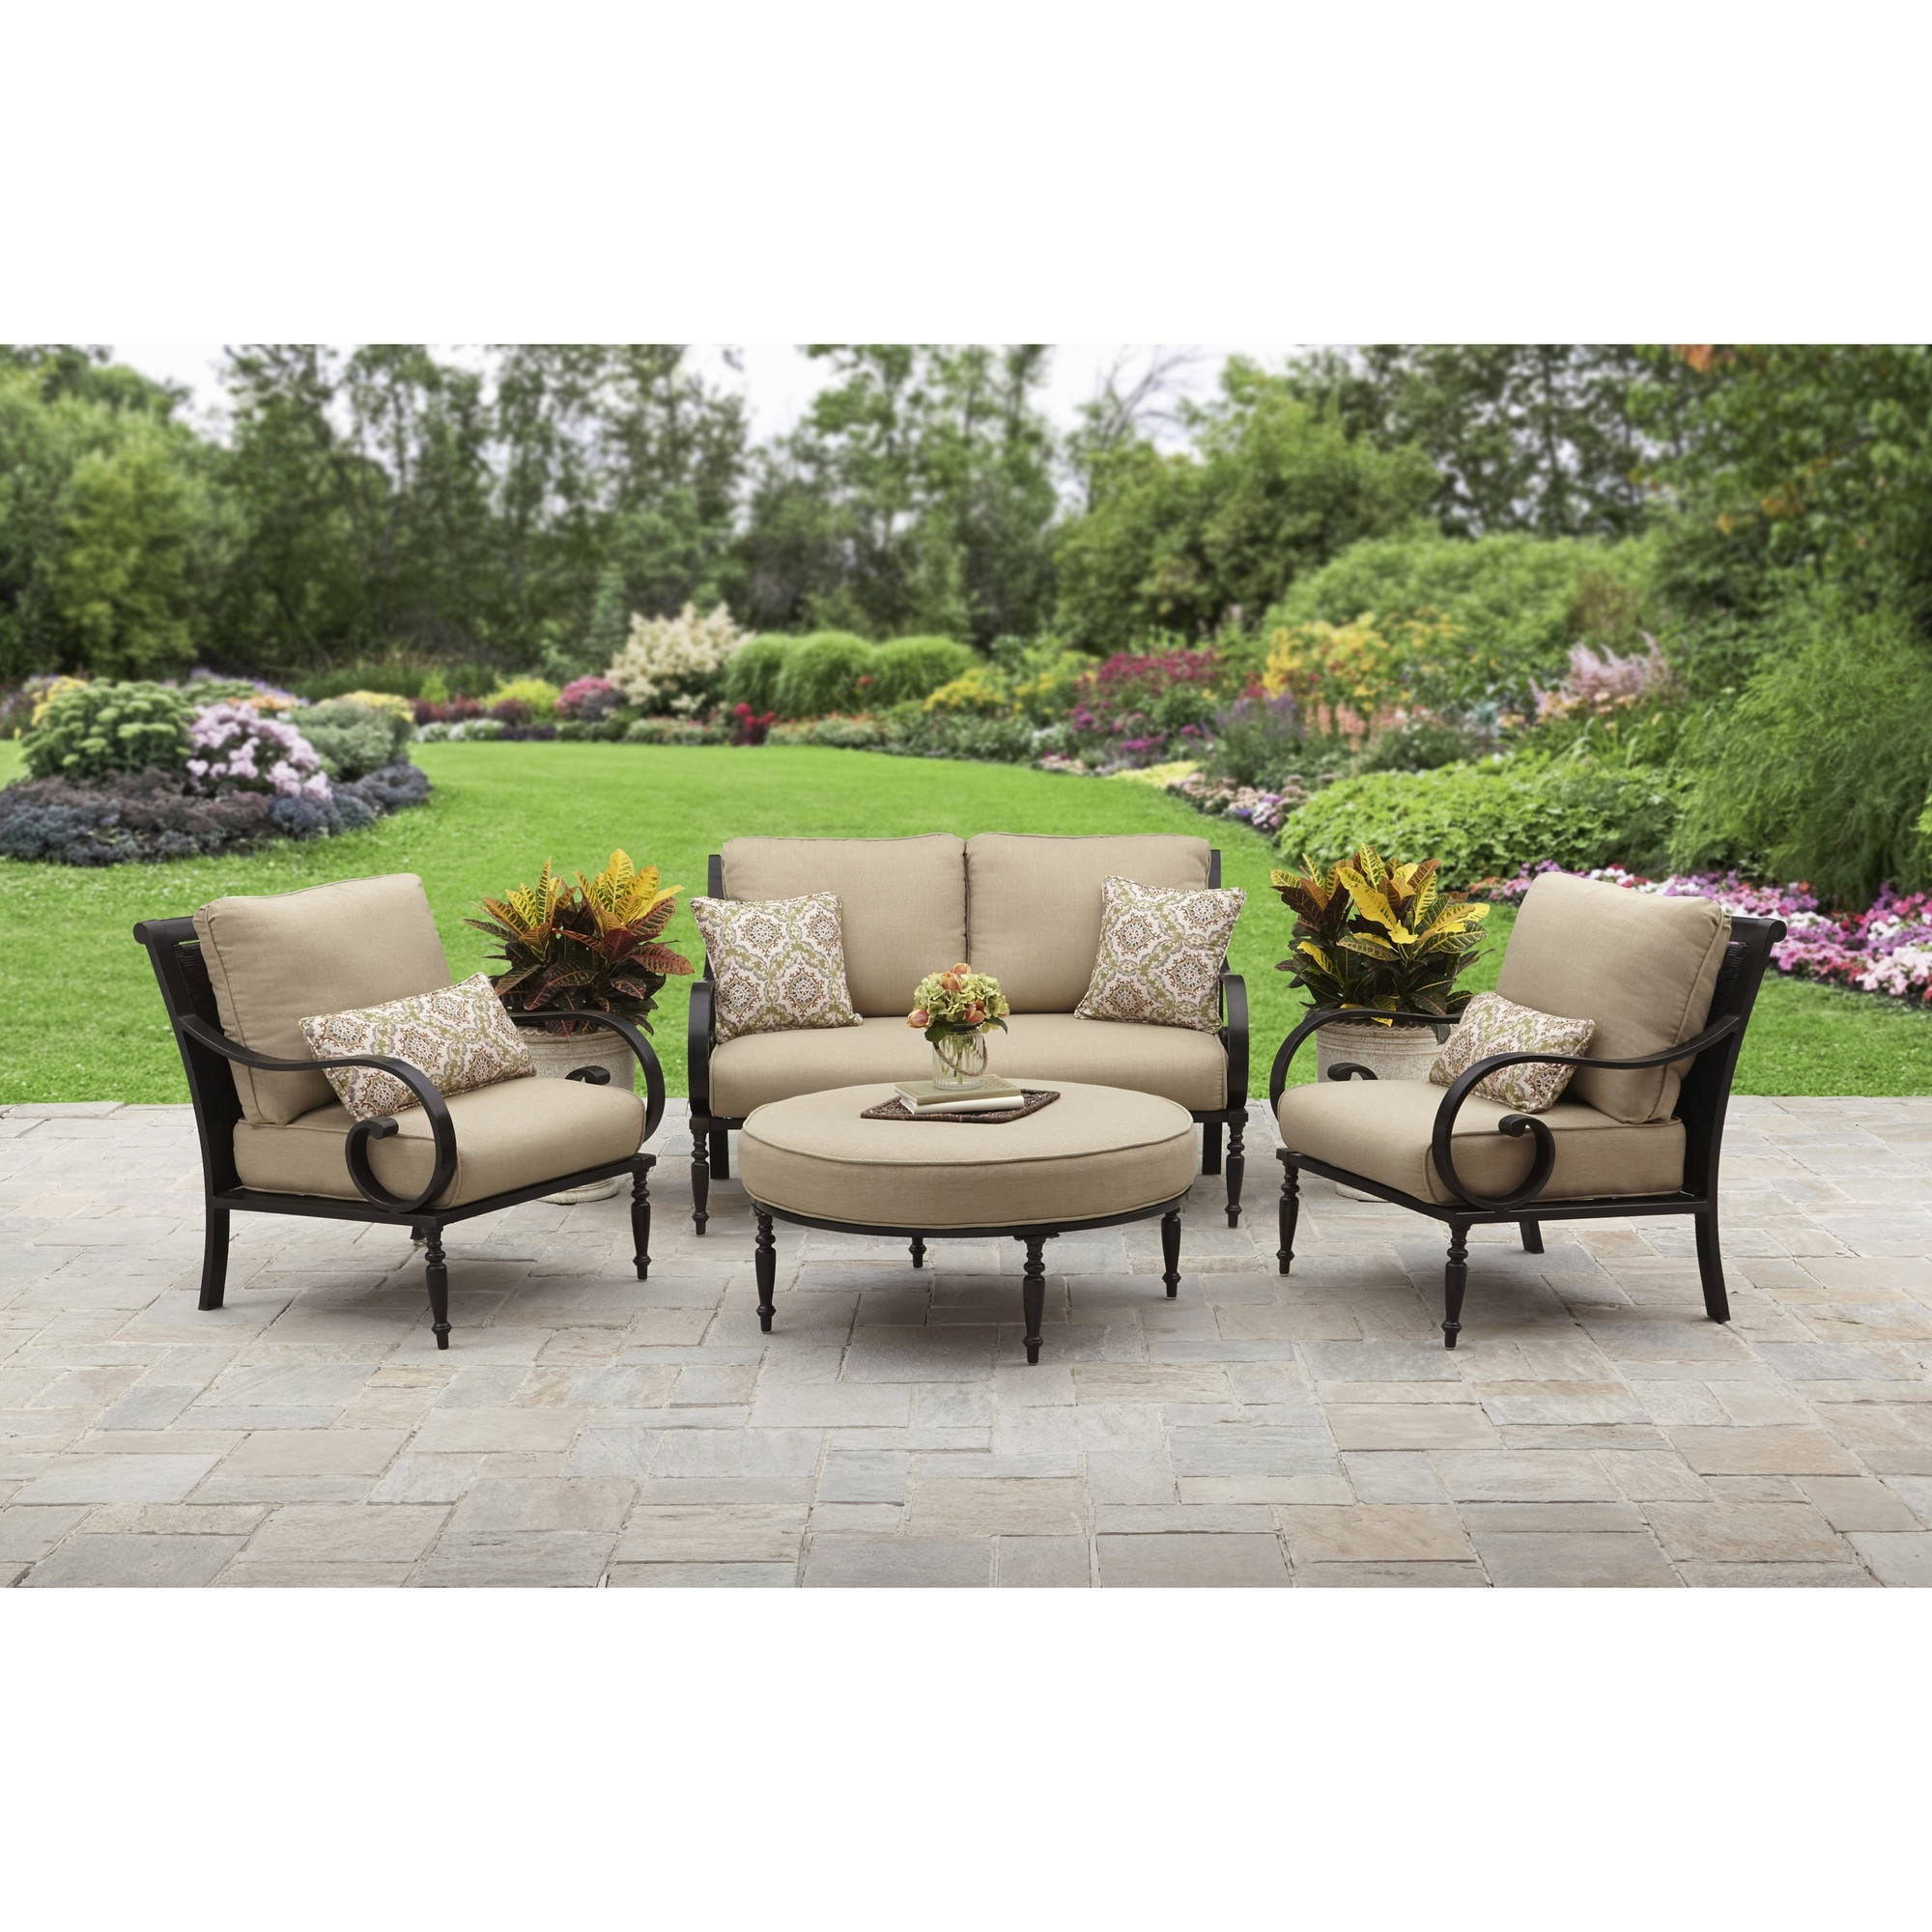 Popular Patio Table: Lowes Mesh Patio Table Lowes Outdoor Patio Table Set In Round Patio Conversation Sets (View 15 of 20)